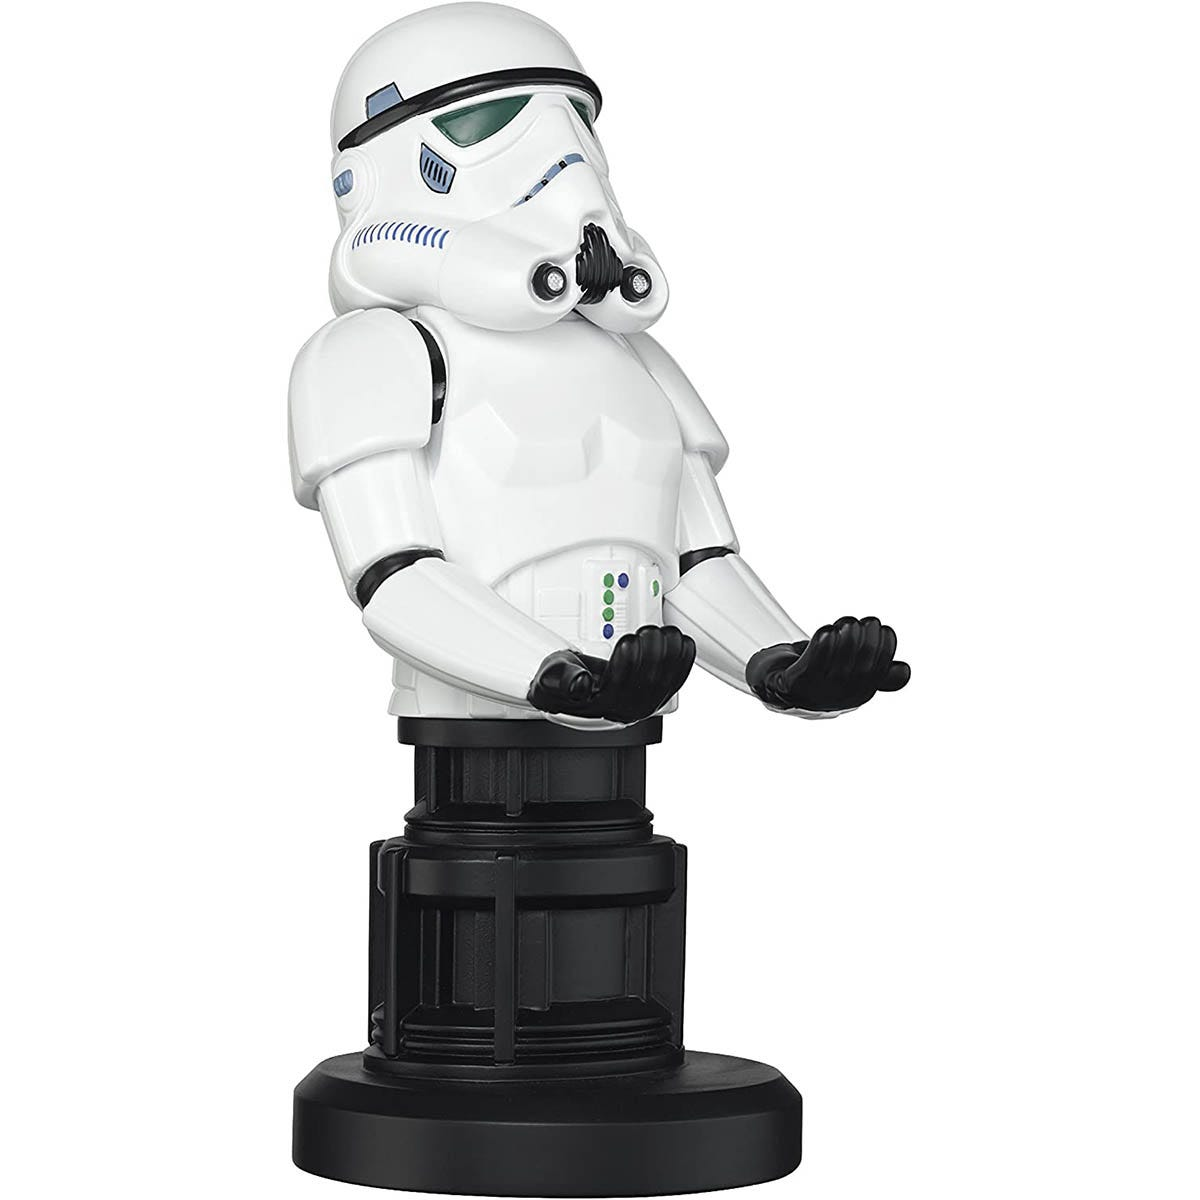 Cable Guys StormTrooper Cable Guy - Xbox Series X Controller/Phone Holder